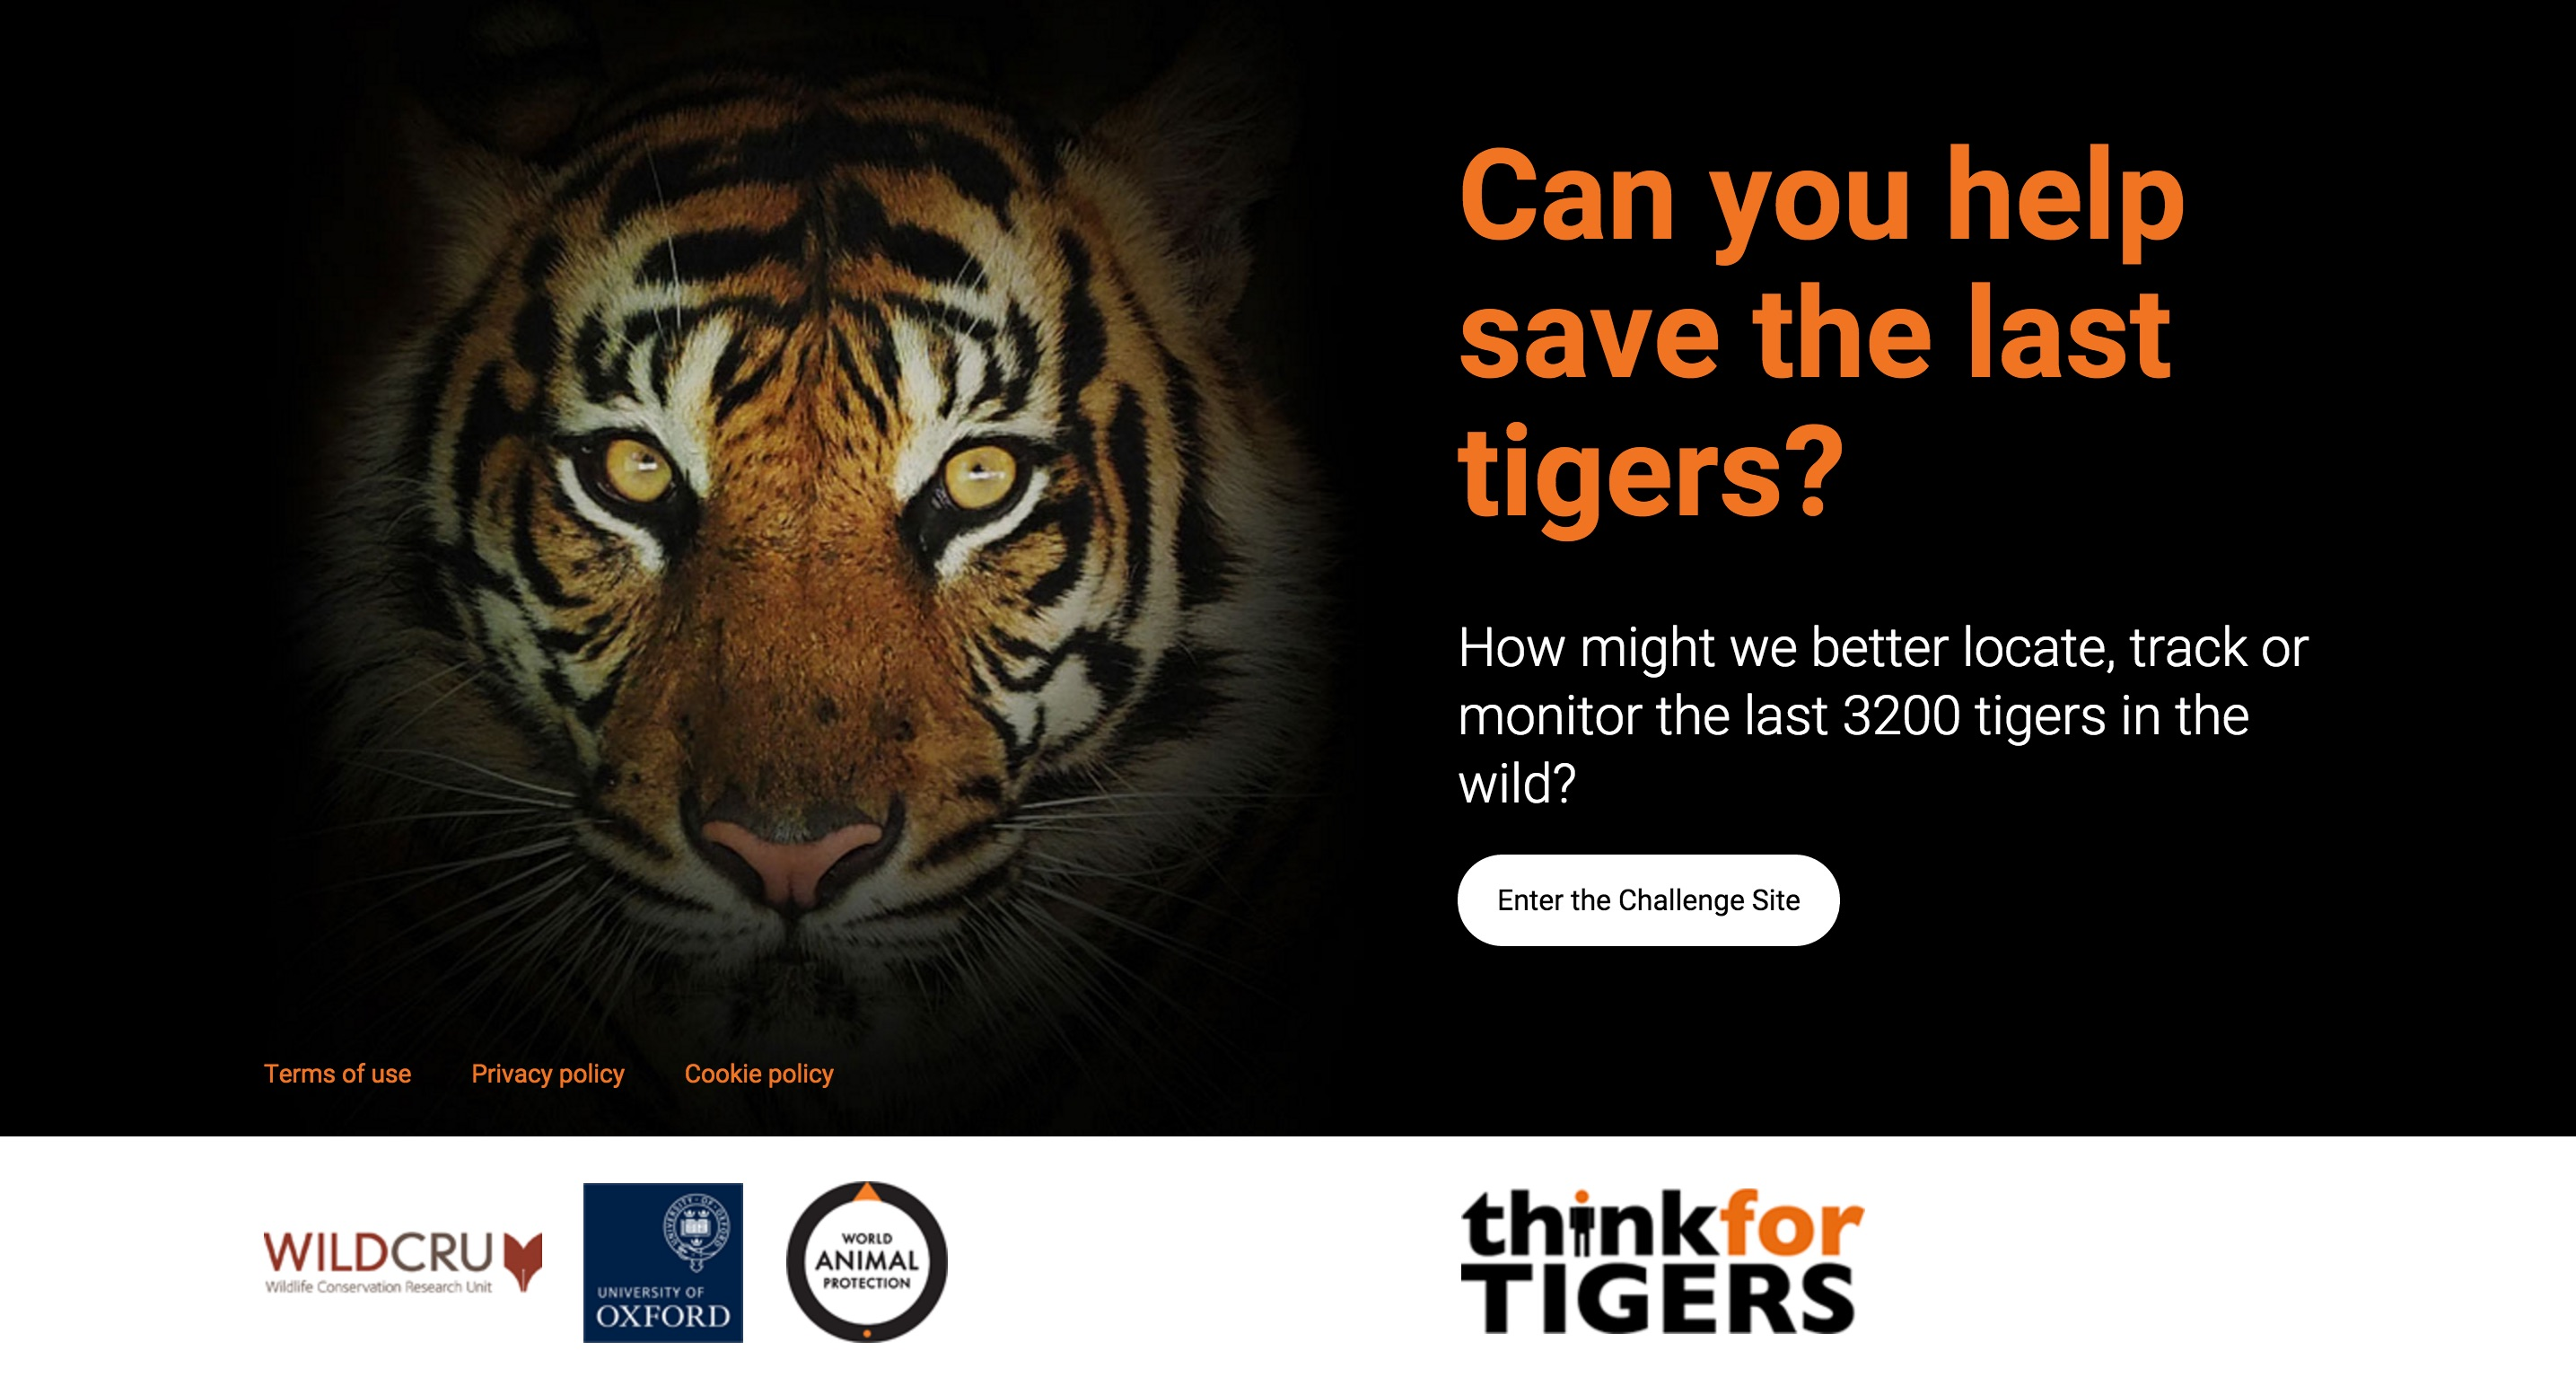 Think for Tigers